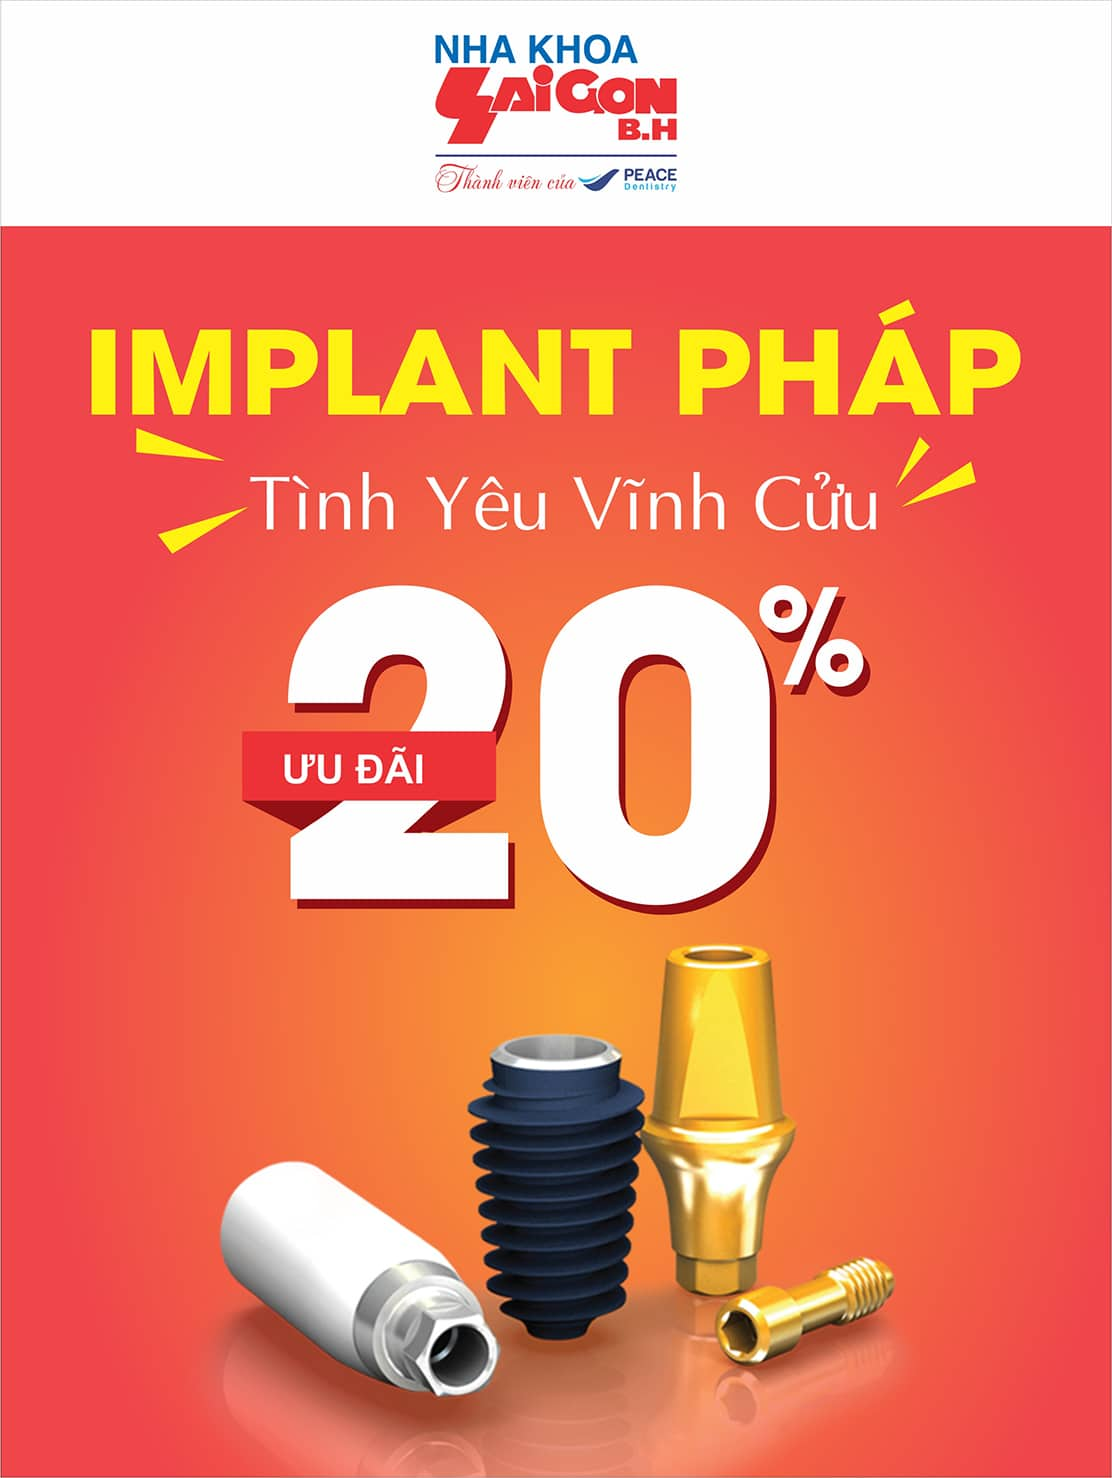 http://nhakhoasaigonbh.com/wp-content/uploads/2018/03/side_chinh_Implant_phap.jpg